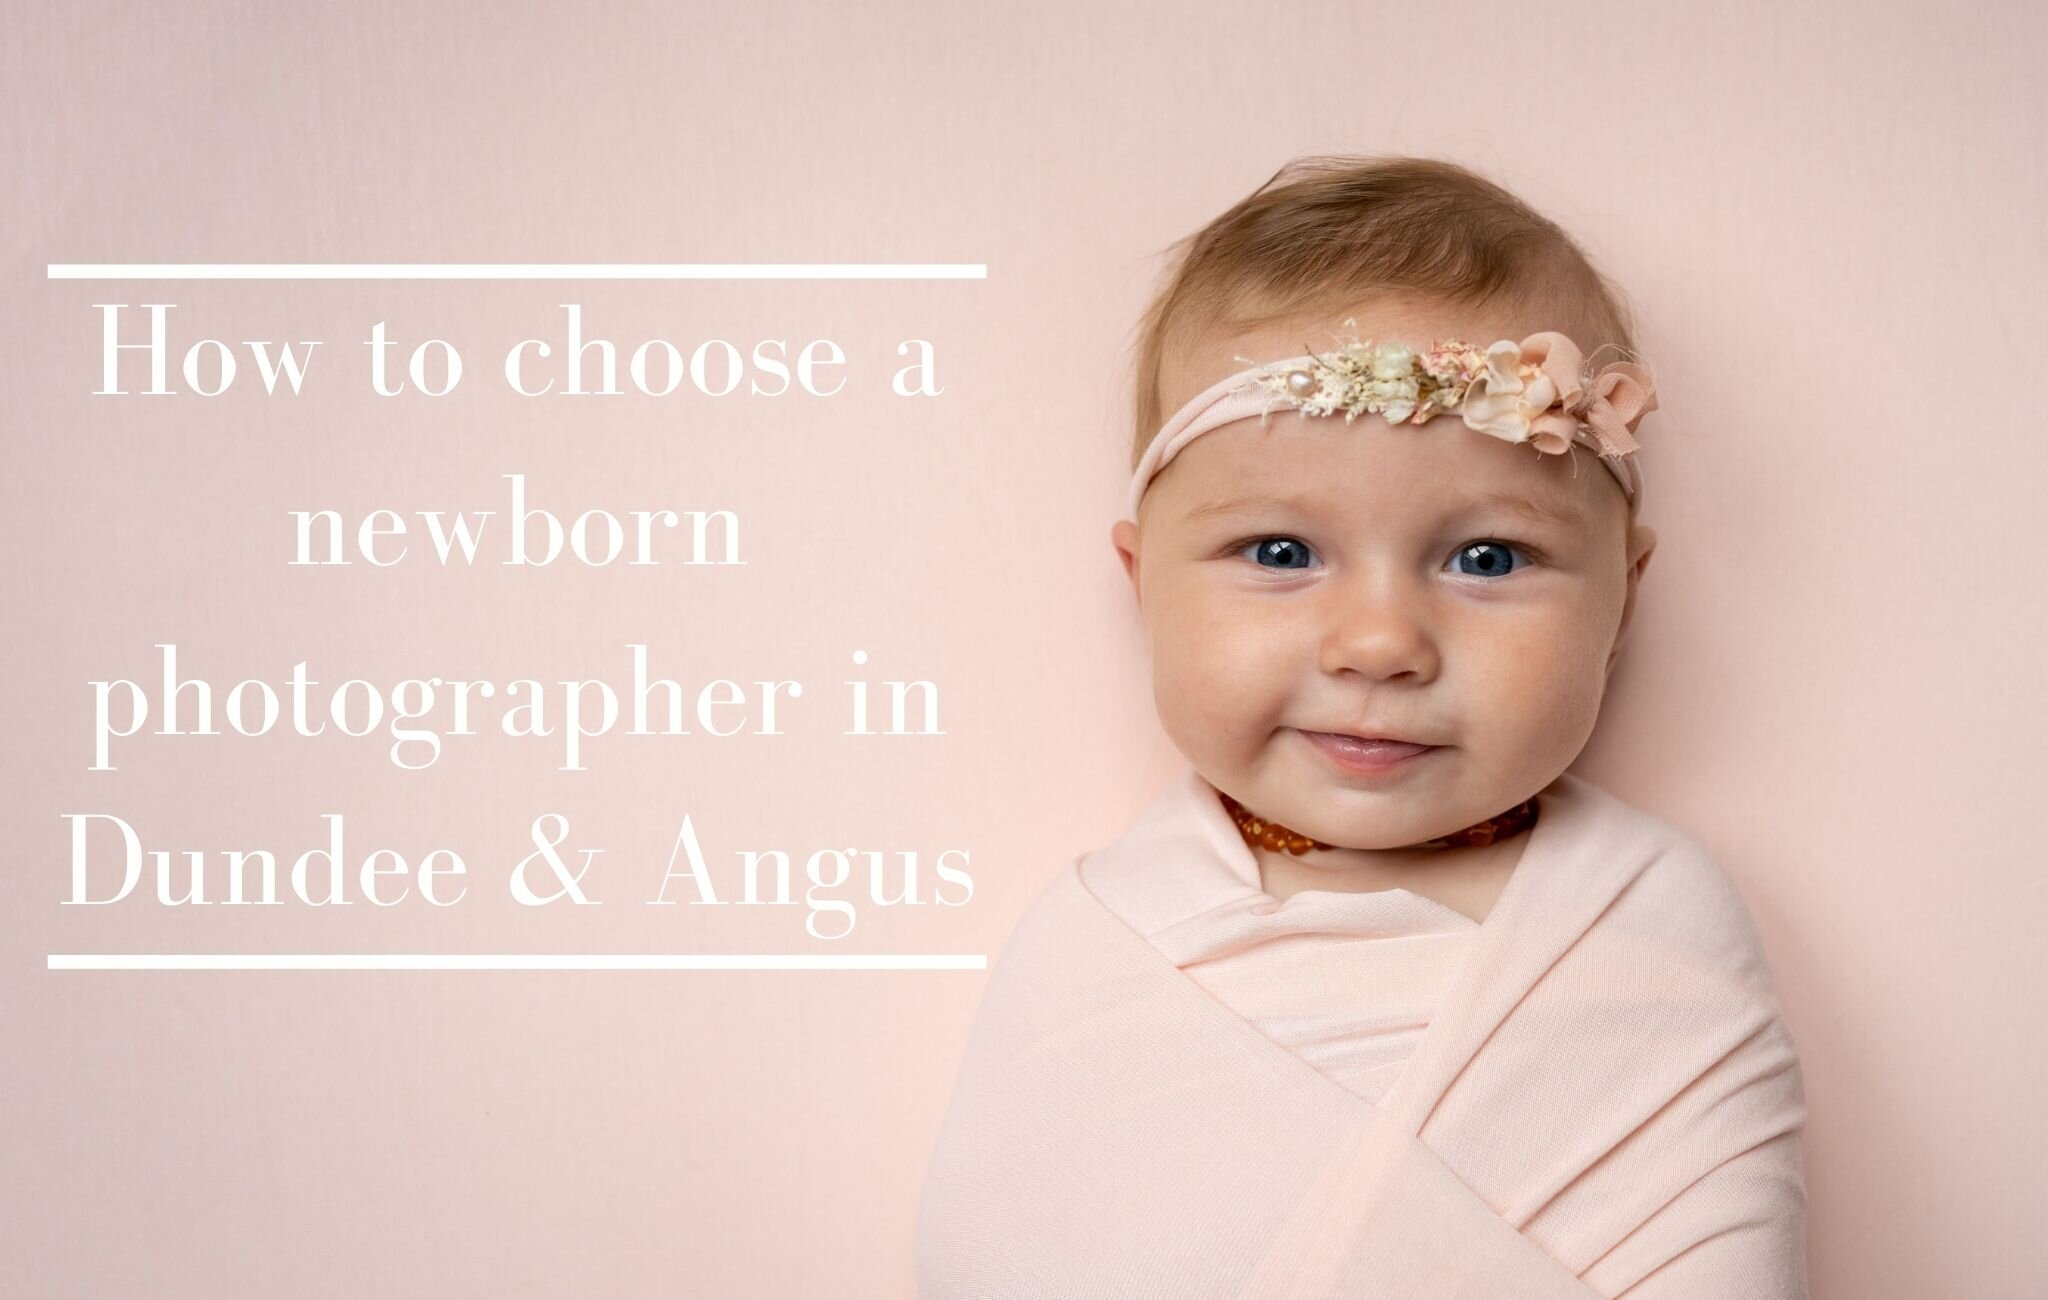 How to choose a newborn photographer in angus dundee gemma gray photography